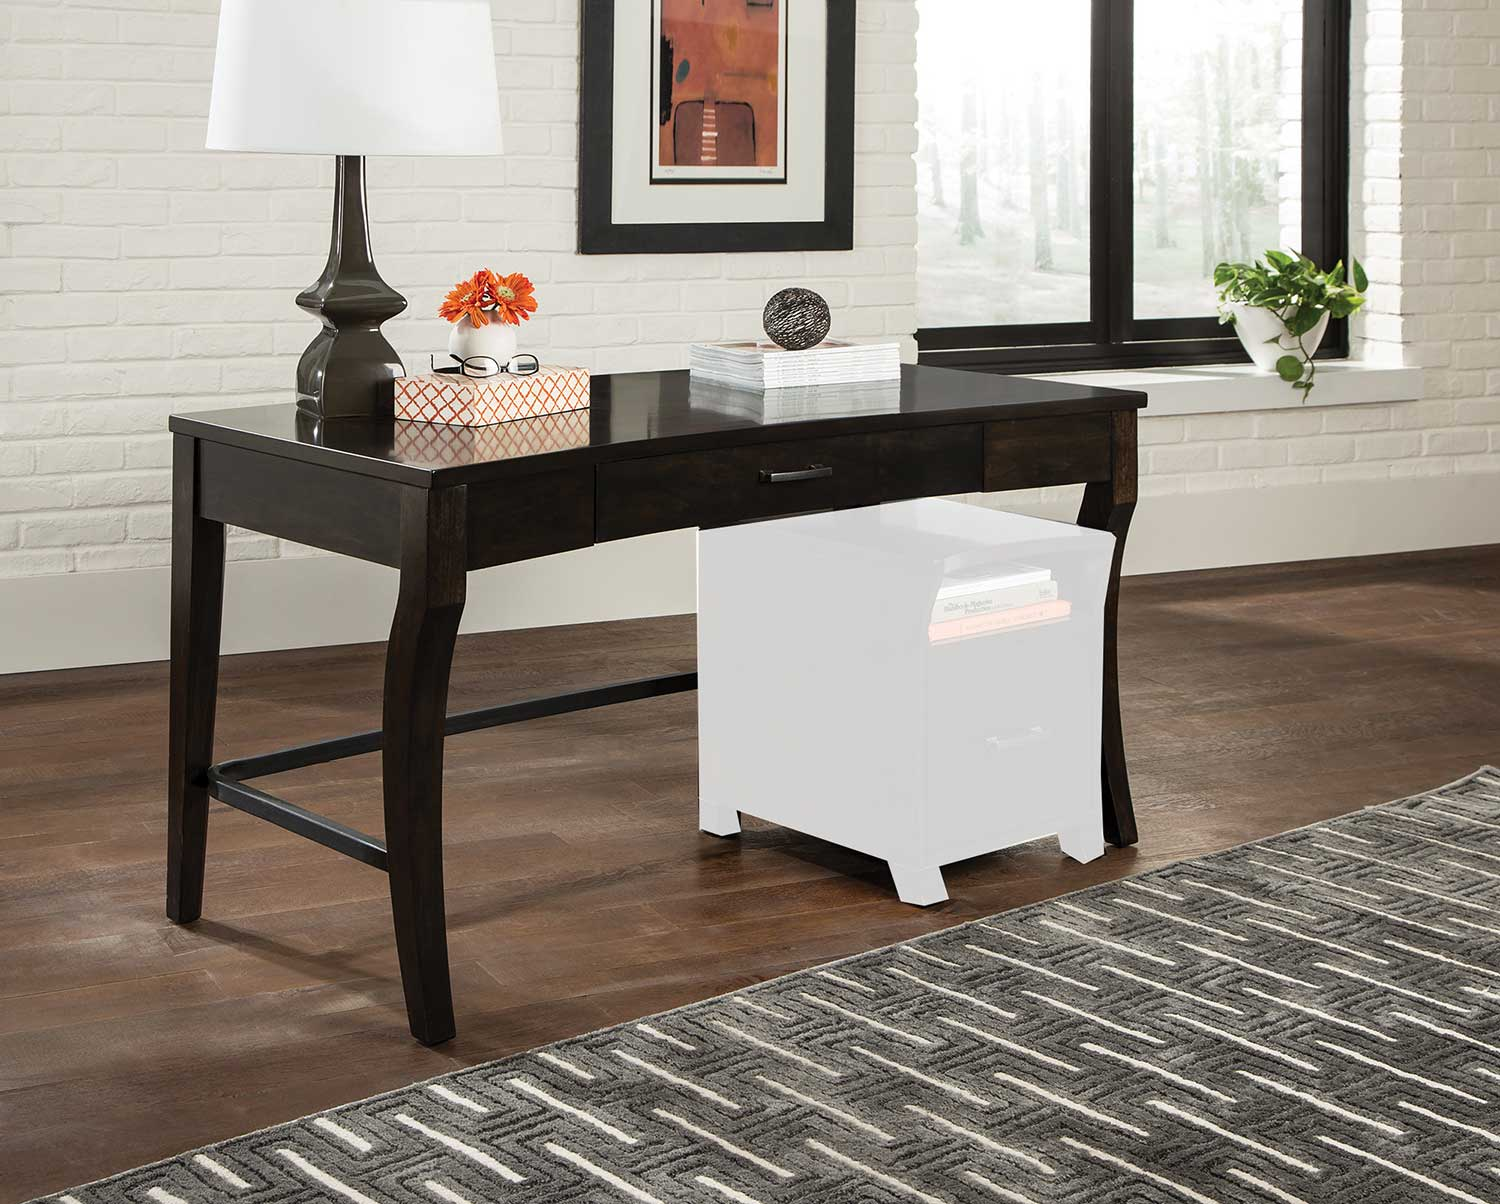 Coaster 801751 Writing Desk - Smoke Black